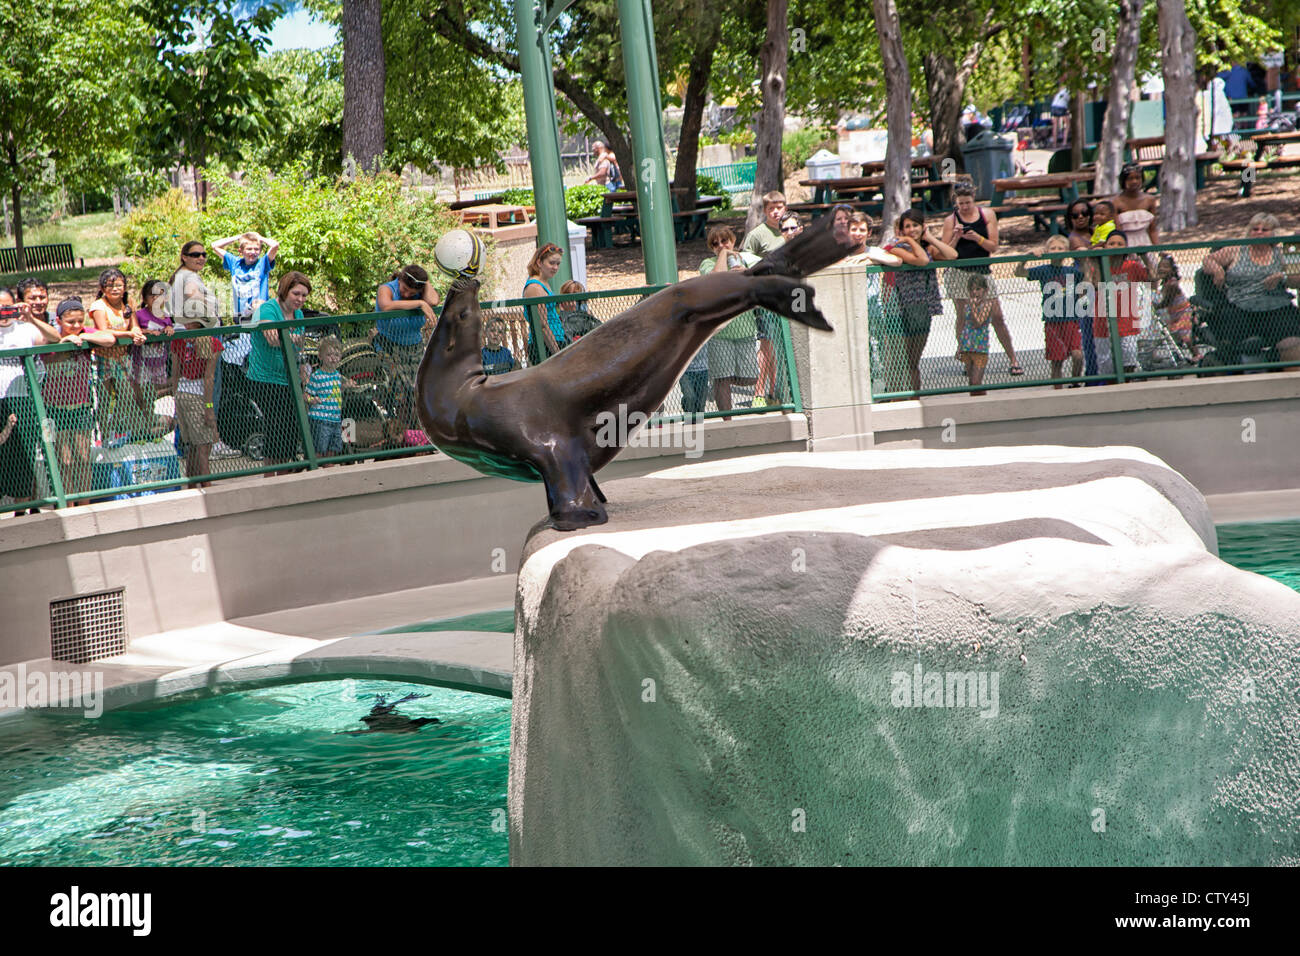 Sea Lion erklingt in Kansas City Zoo Stockbild